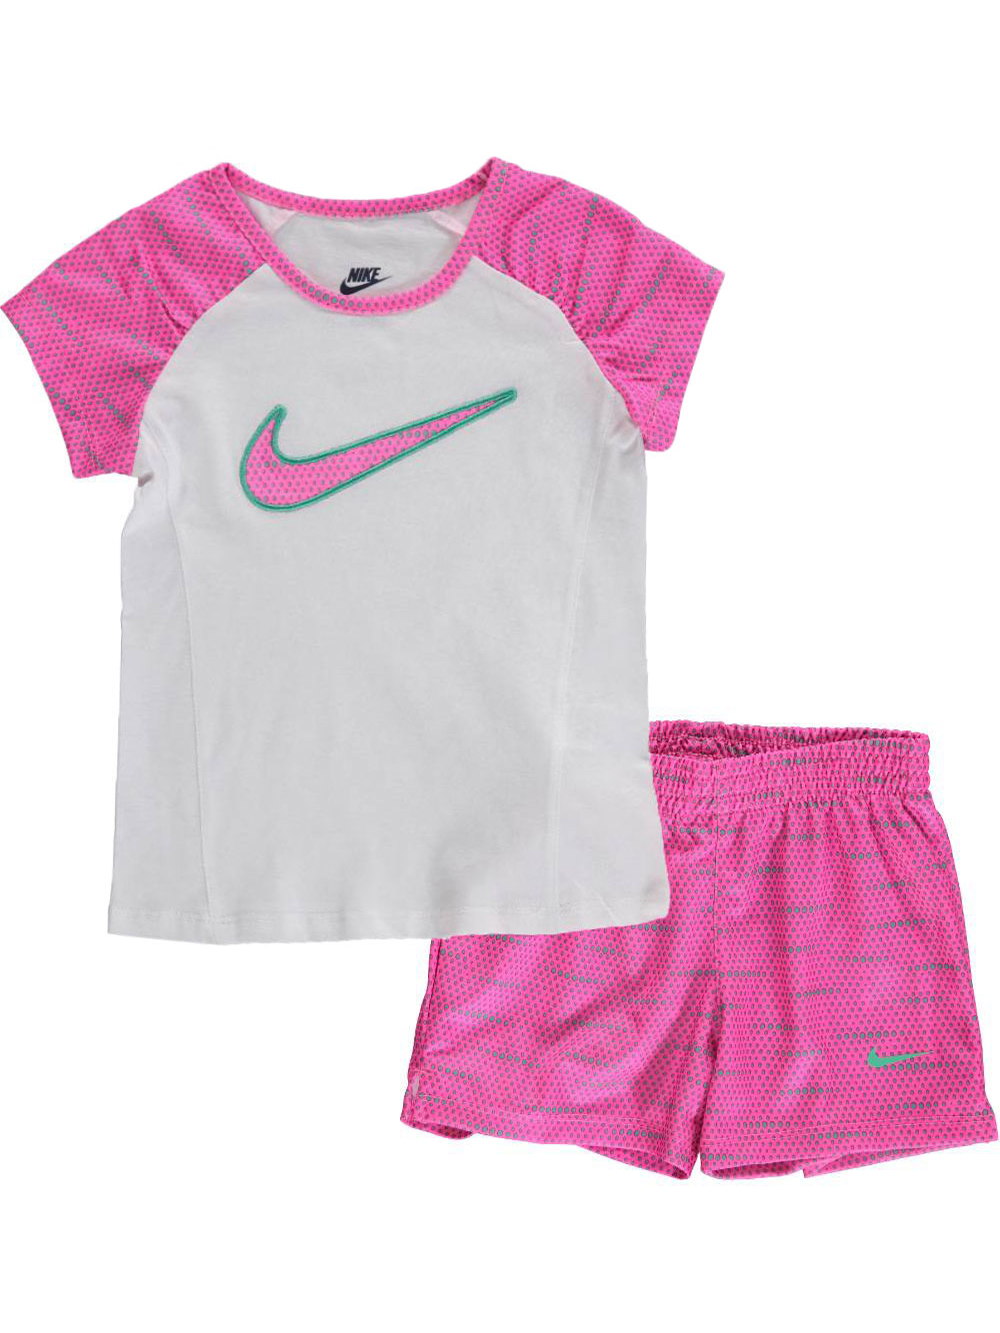 Nike Little Girls' 2-Piece Outfit (Sizes 4 - 6X)